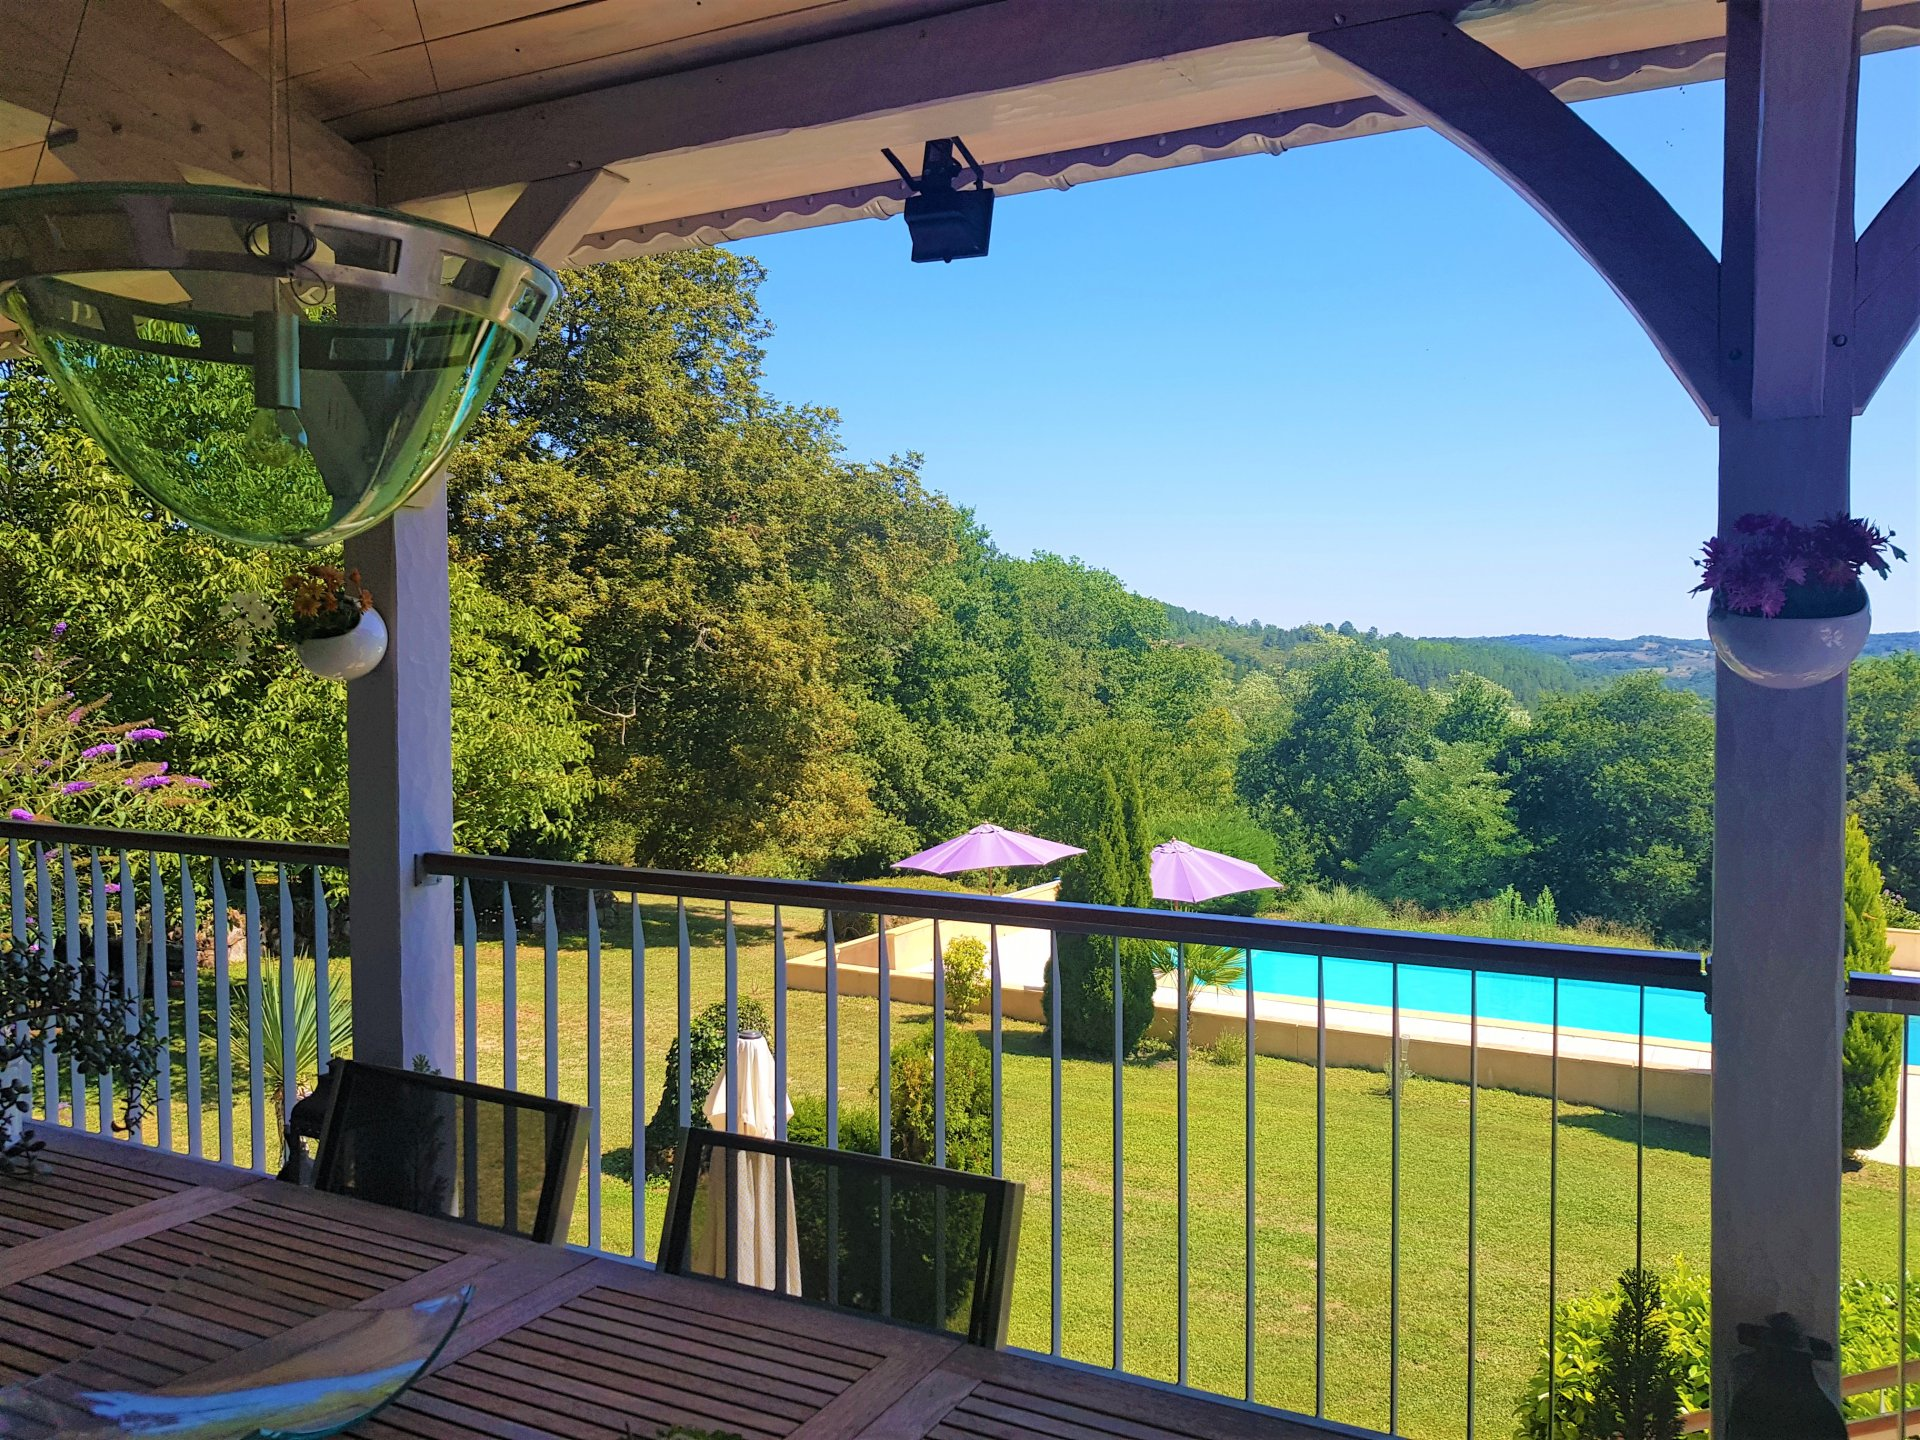 A MUST SEE - beautiful stone property with guest apartment, pool and stunning views!!